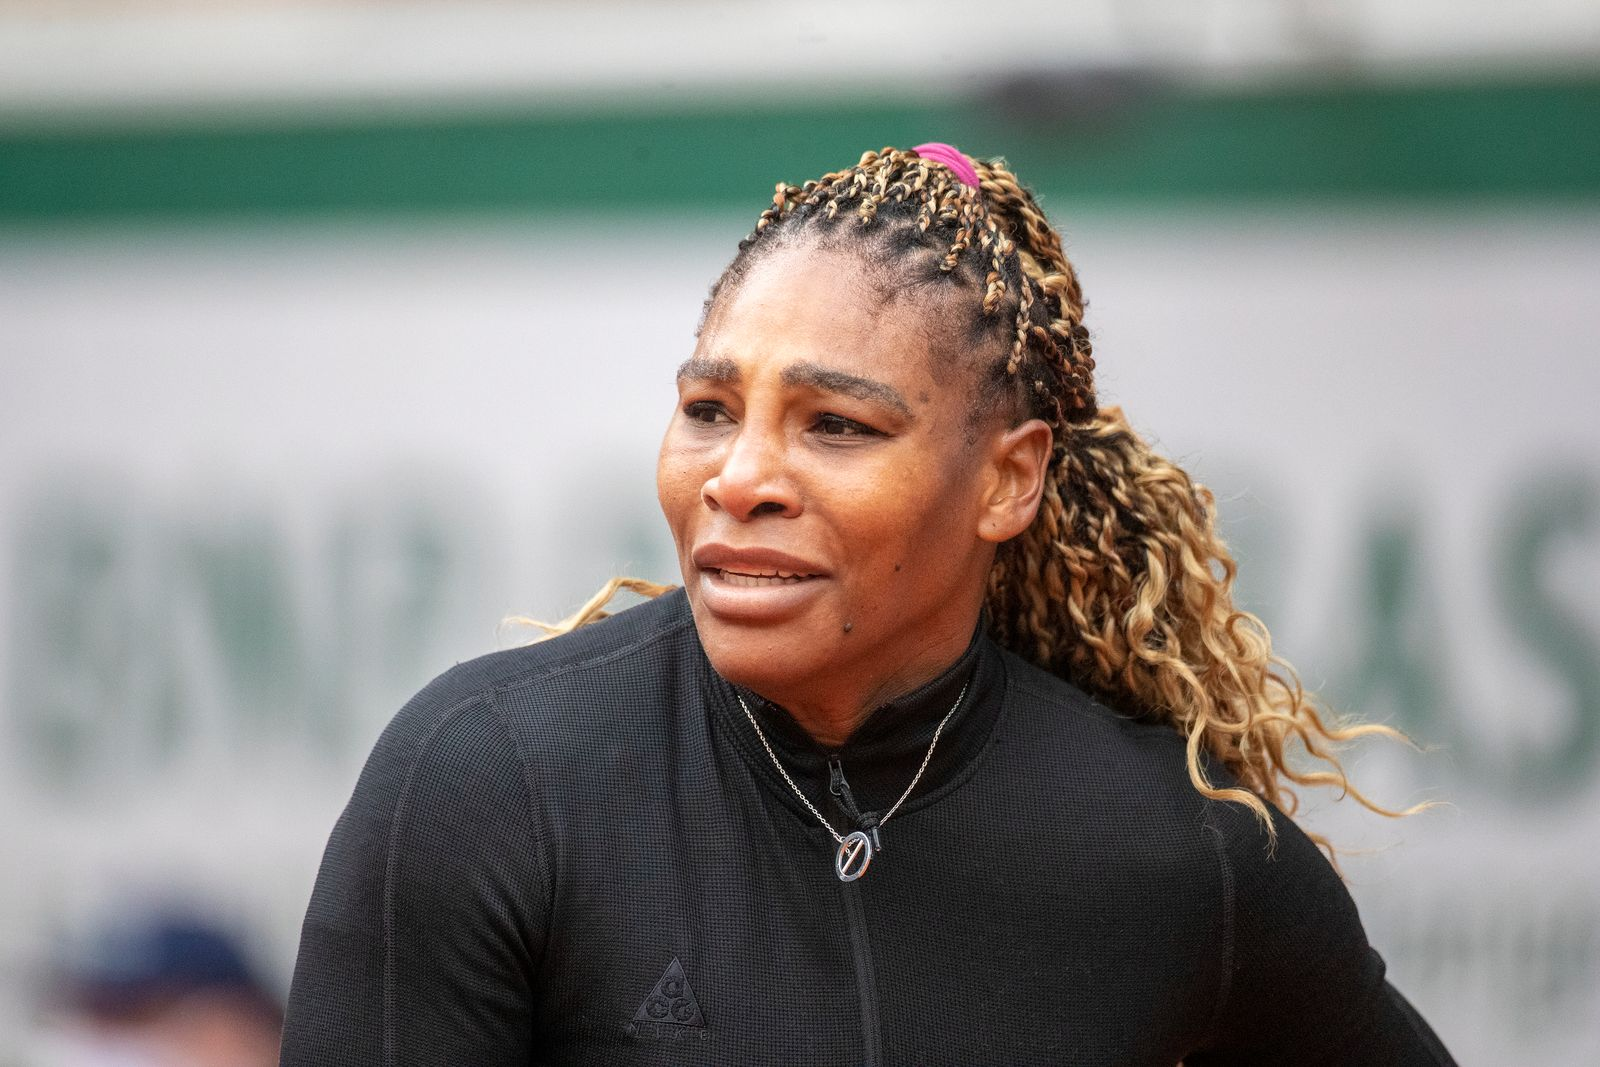 Serena Williams during the French Open Tennis Tournament at Roland Garros on September 28th 2020 | Getty Images